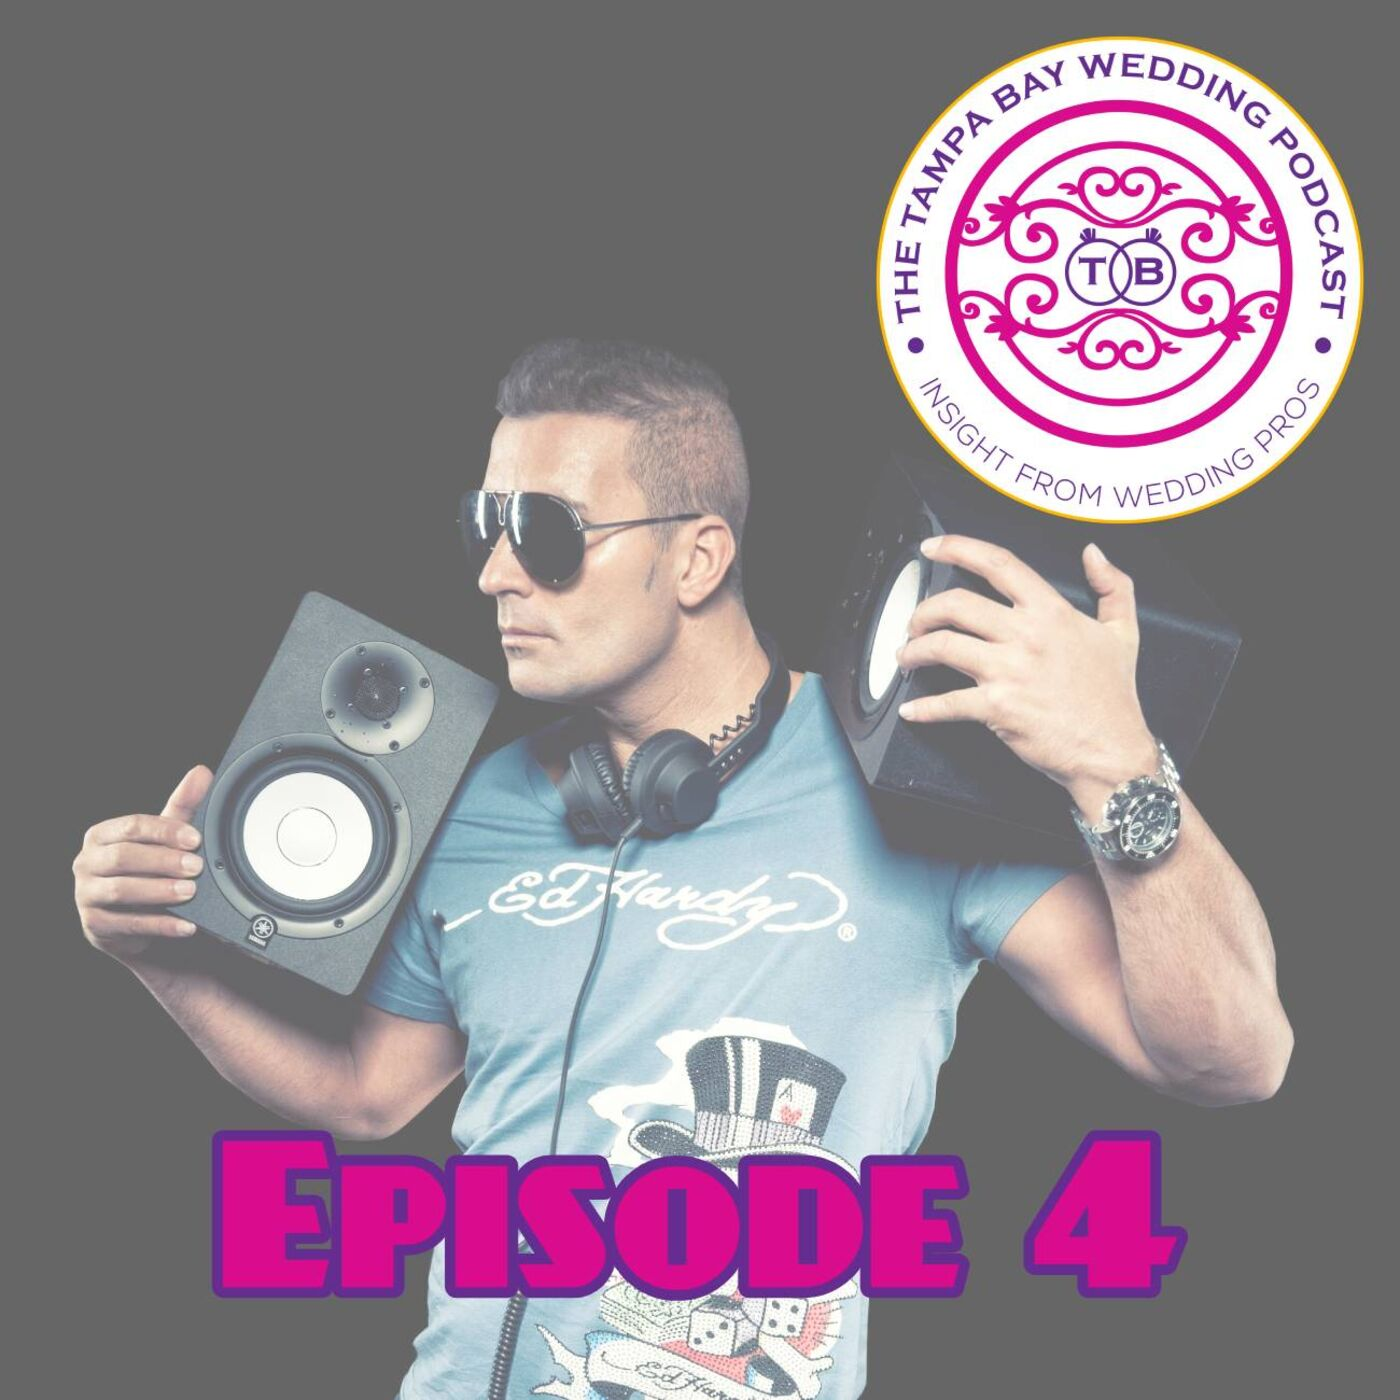 The Tampa Bay Wedding Podcast, Episode 4: Three Crucial Questions To Ask Your DJ Before You Hire Them (Part 3 of 3)